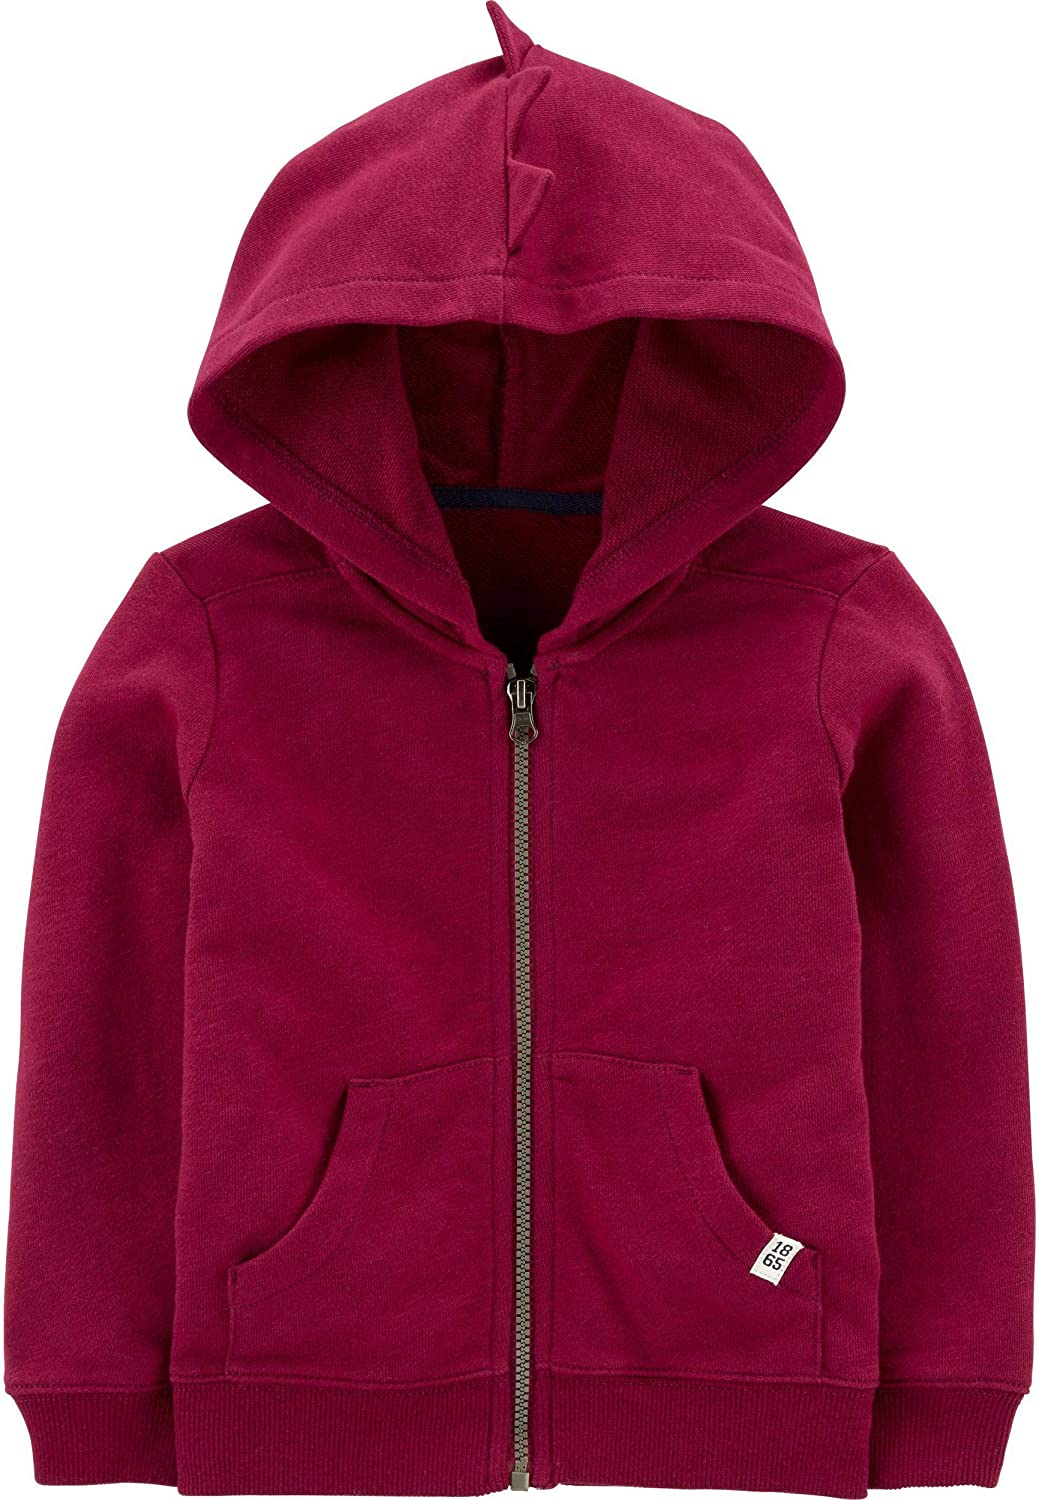 Carter's Baby Boy's Zip Front French Terry Spike Hoodie